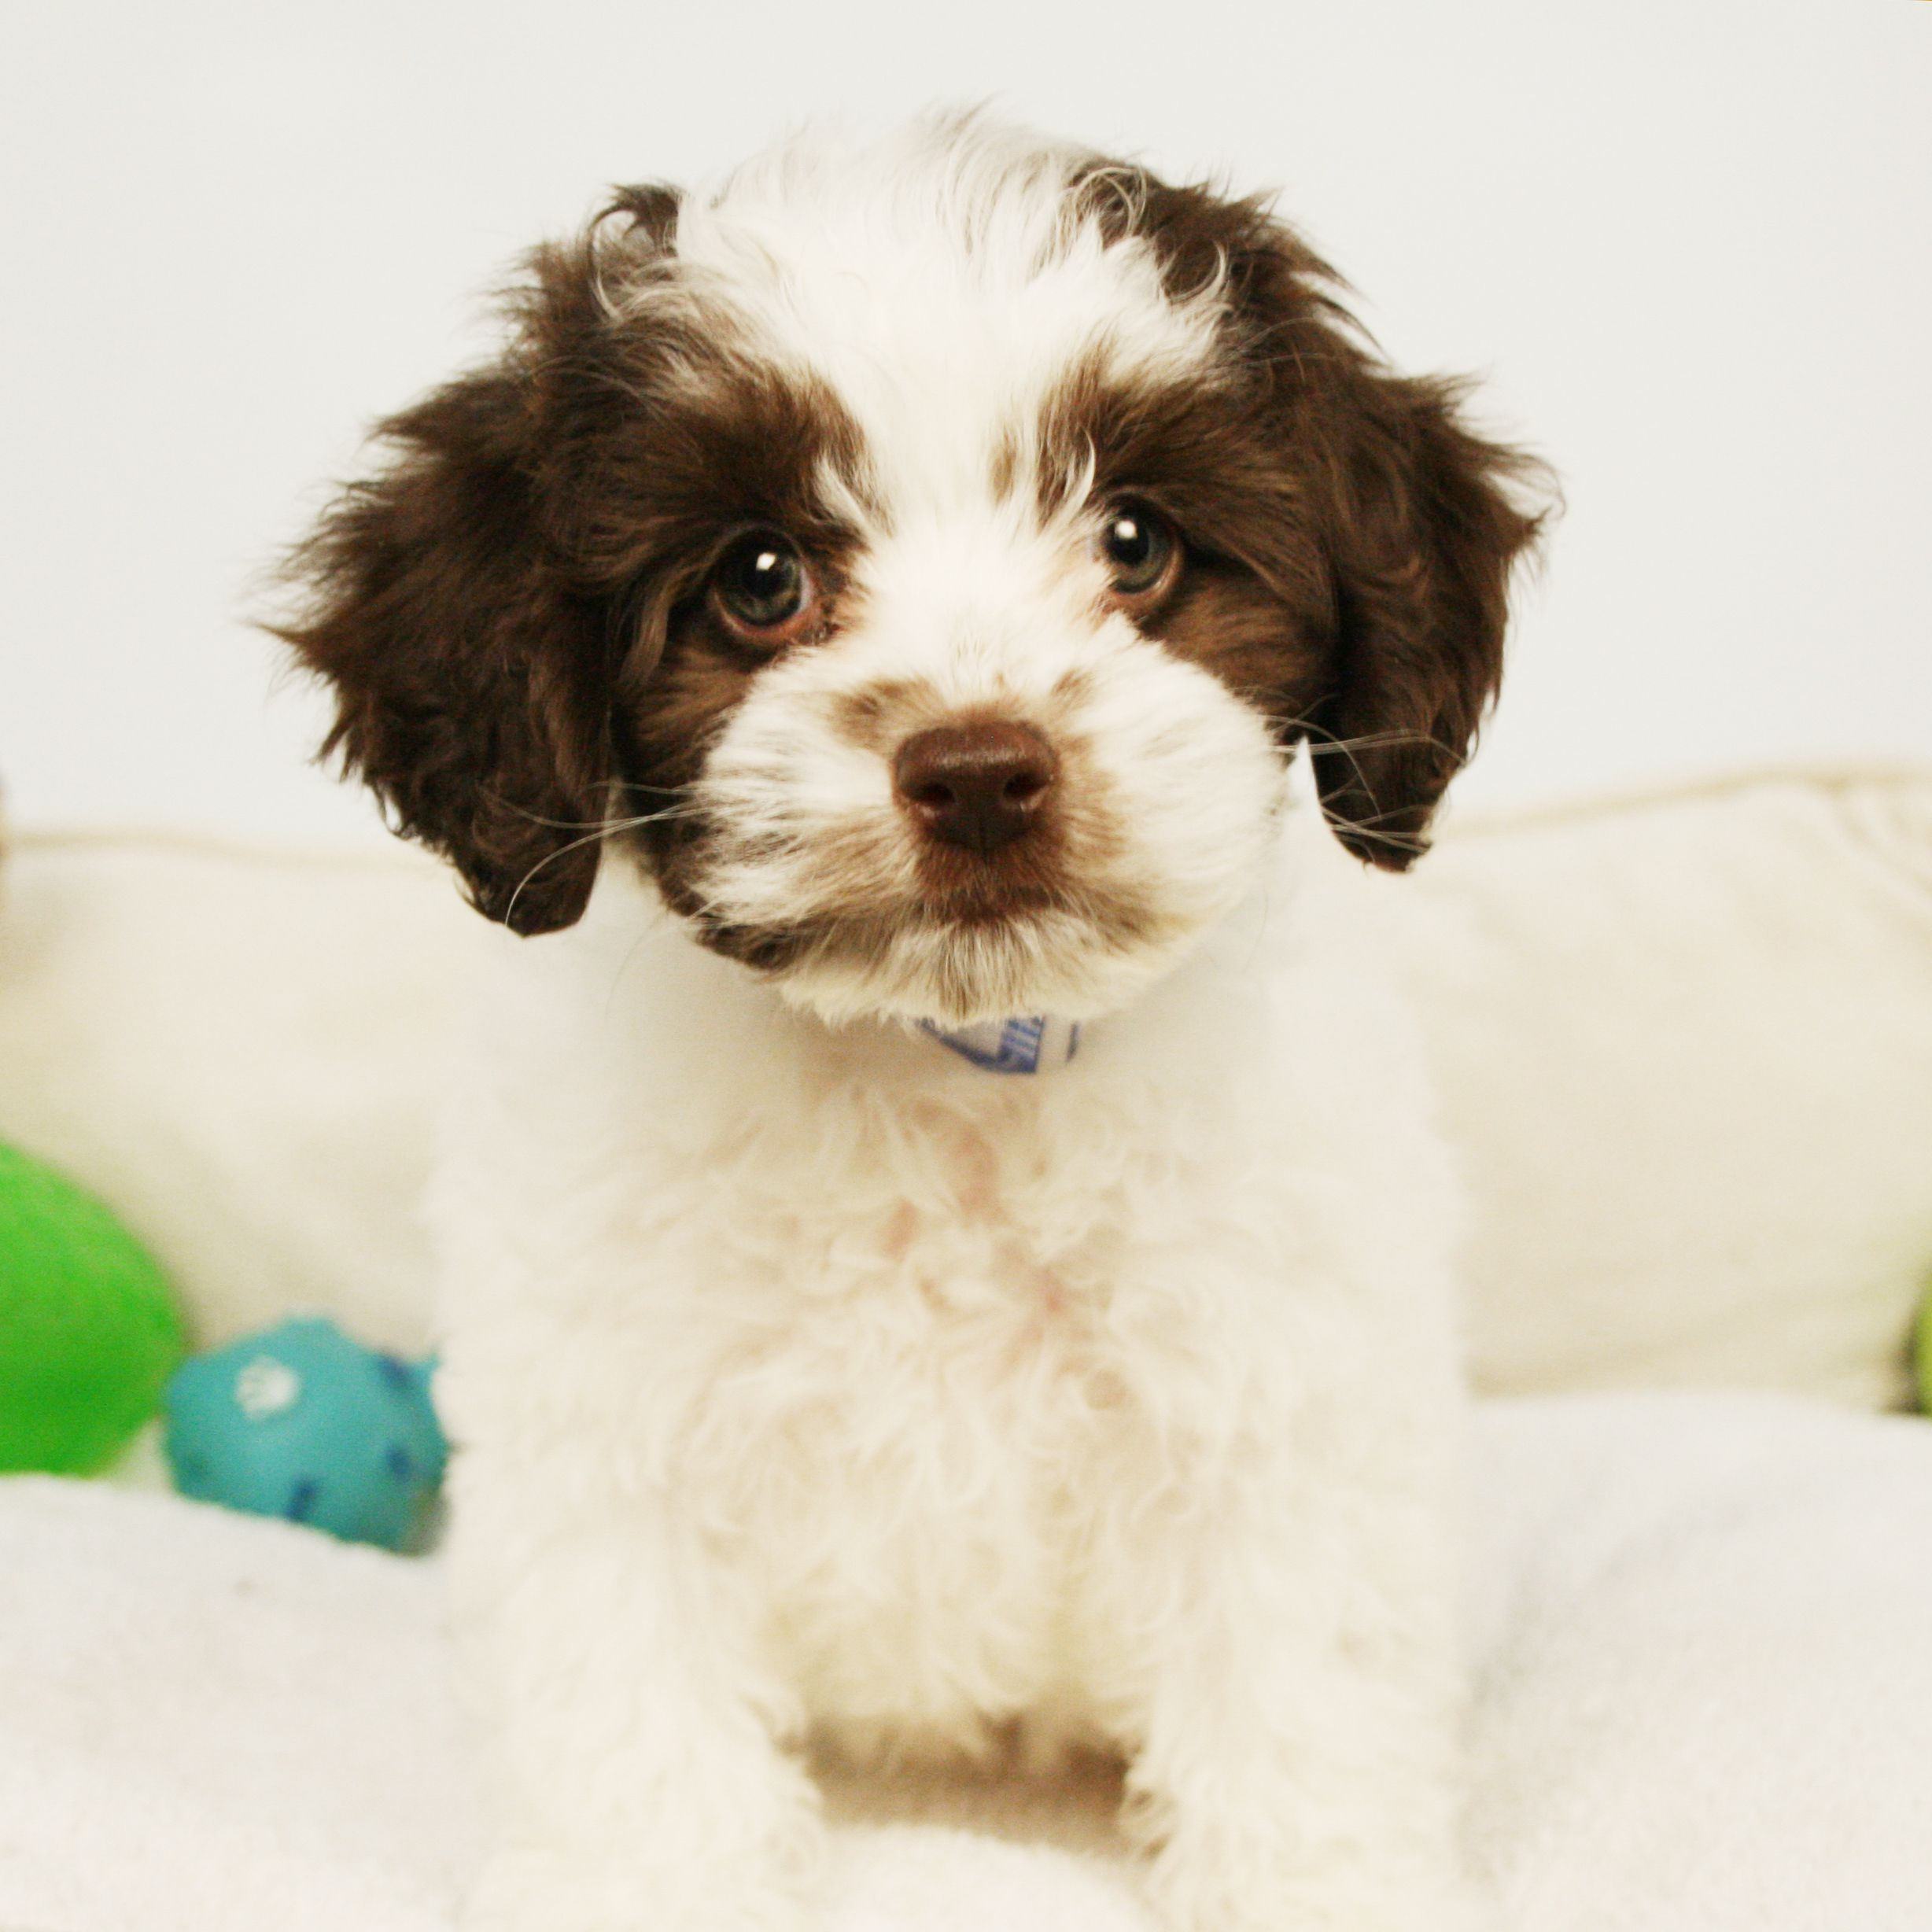 Cockapoo puppies are adorable hybrids of cocker spaniels